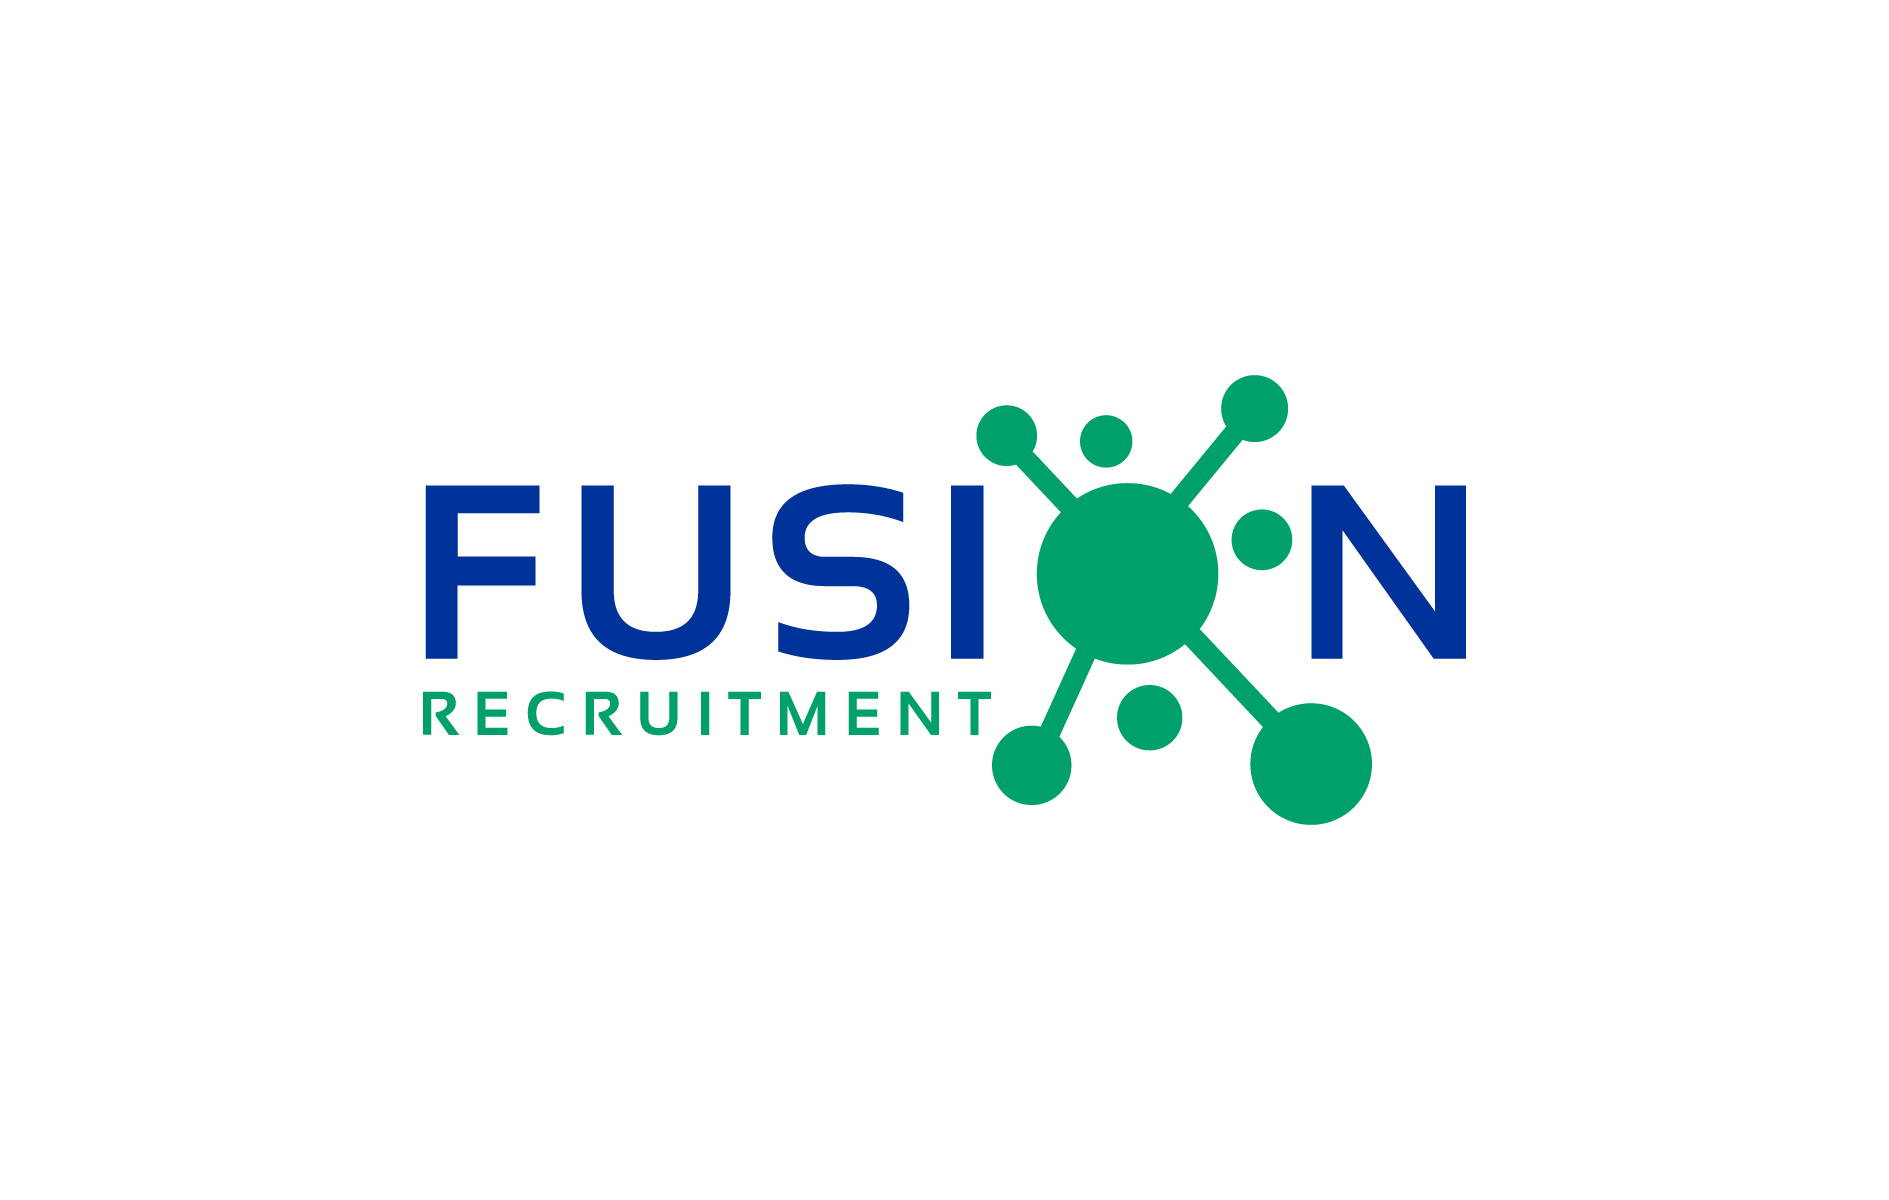 Fusion Recruitmentlogo